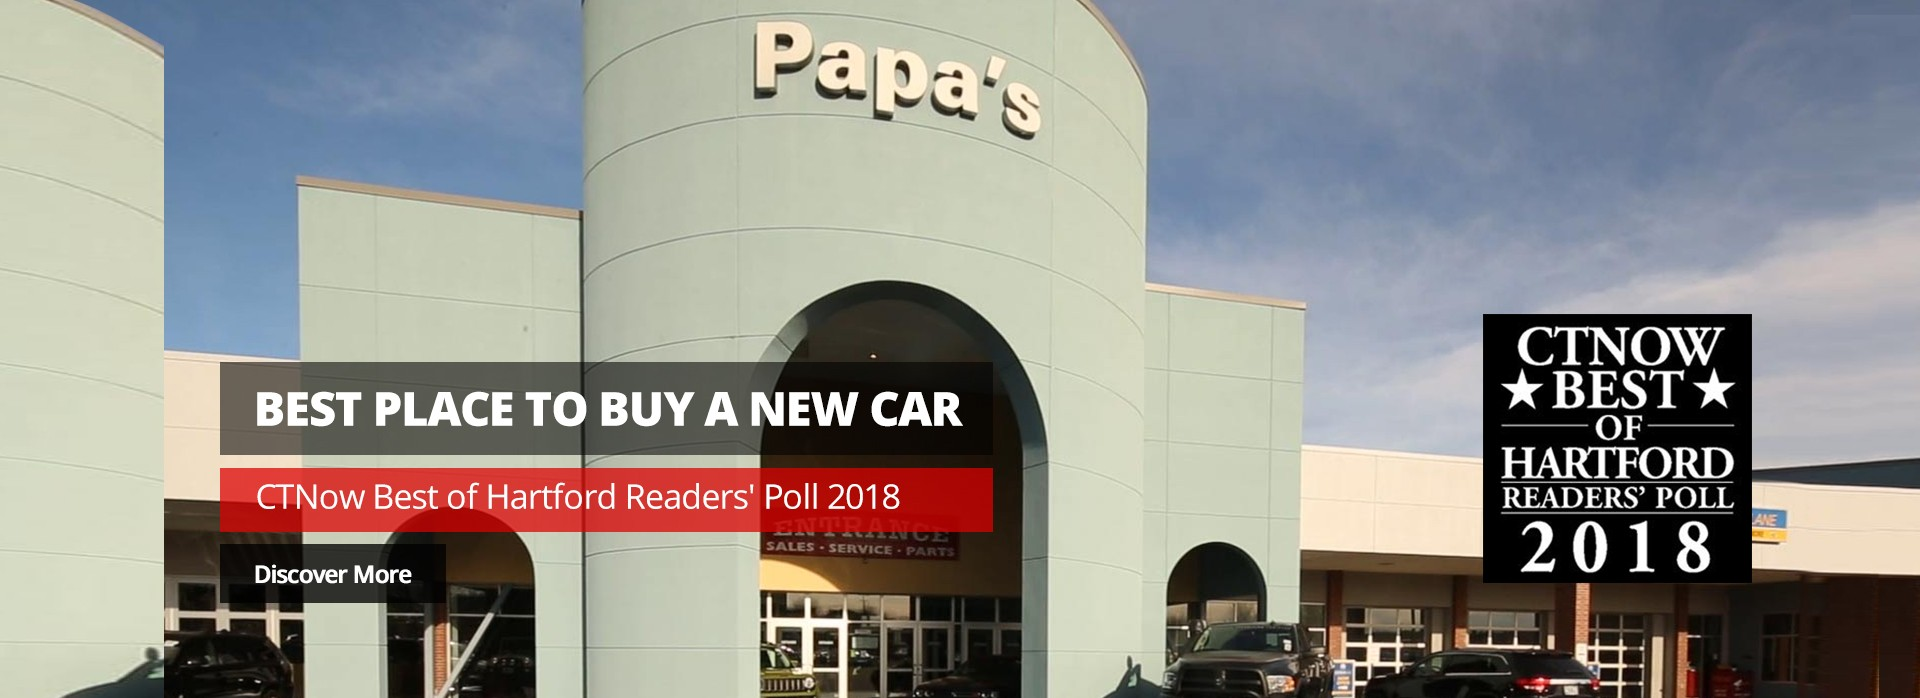 BEST PLACE TO BUY A NEW CAR